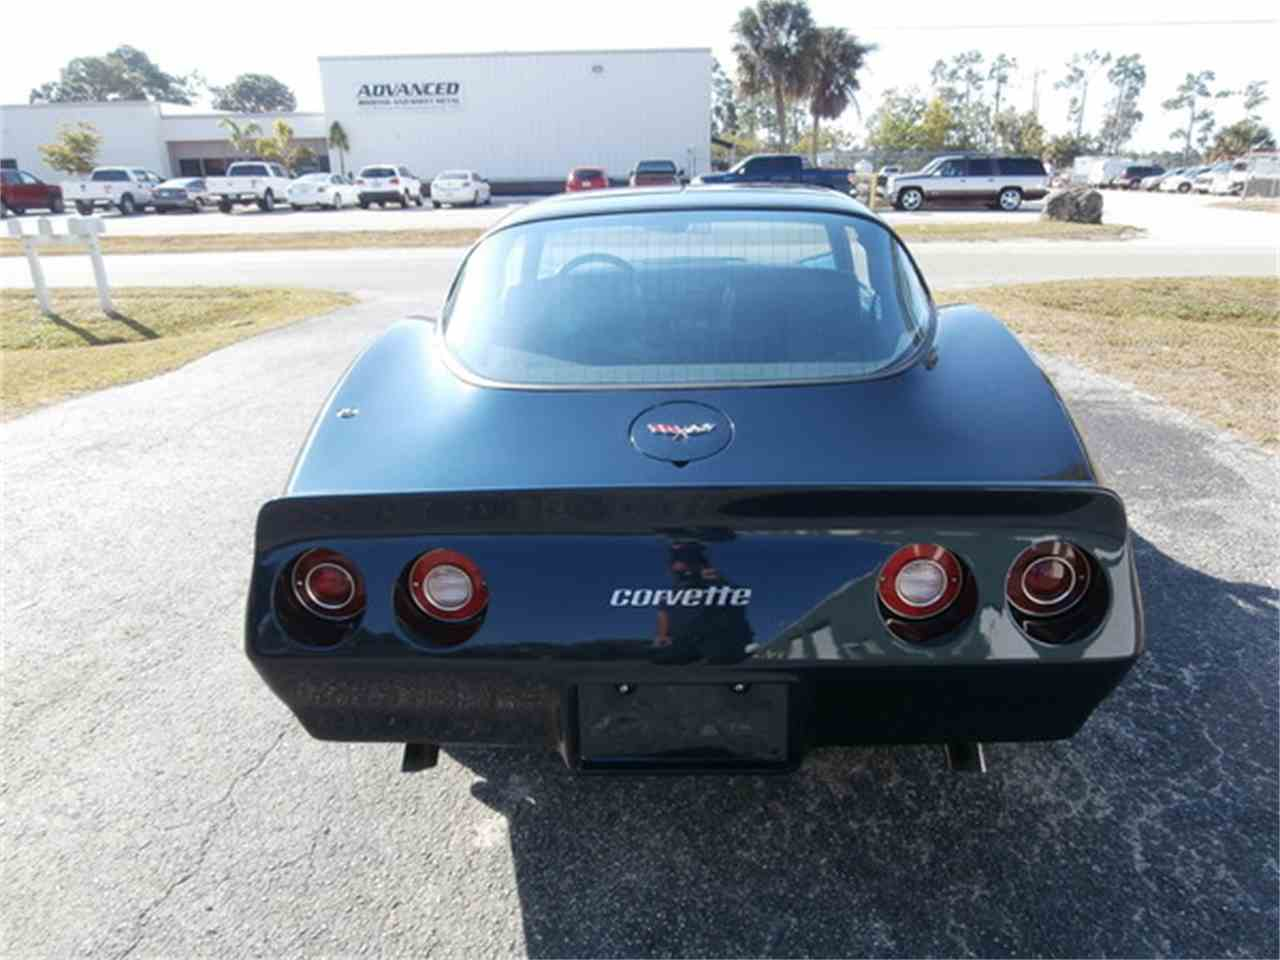 Large Picture of '79 Chevrolet Corvette located in Fort Myers/ Macomb, MI Florida - $17,900.00 - J2IA